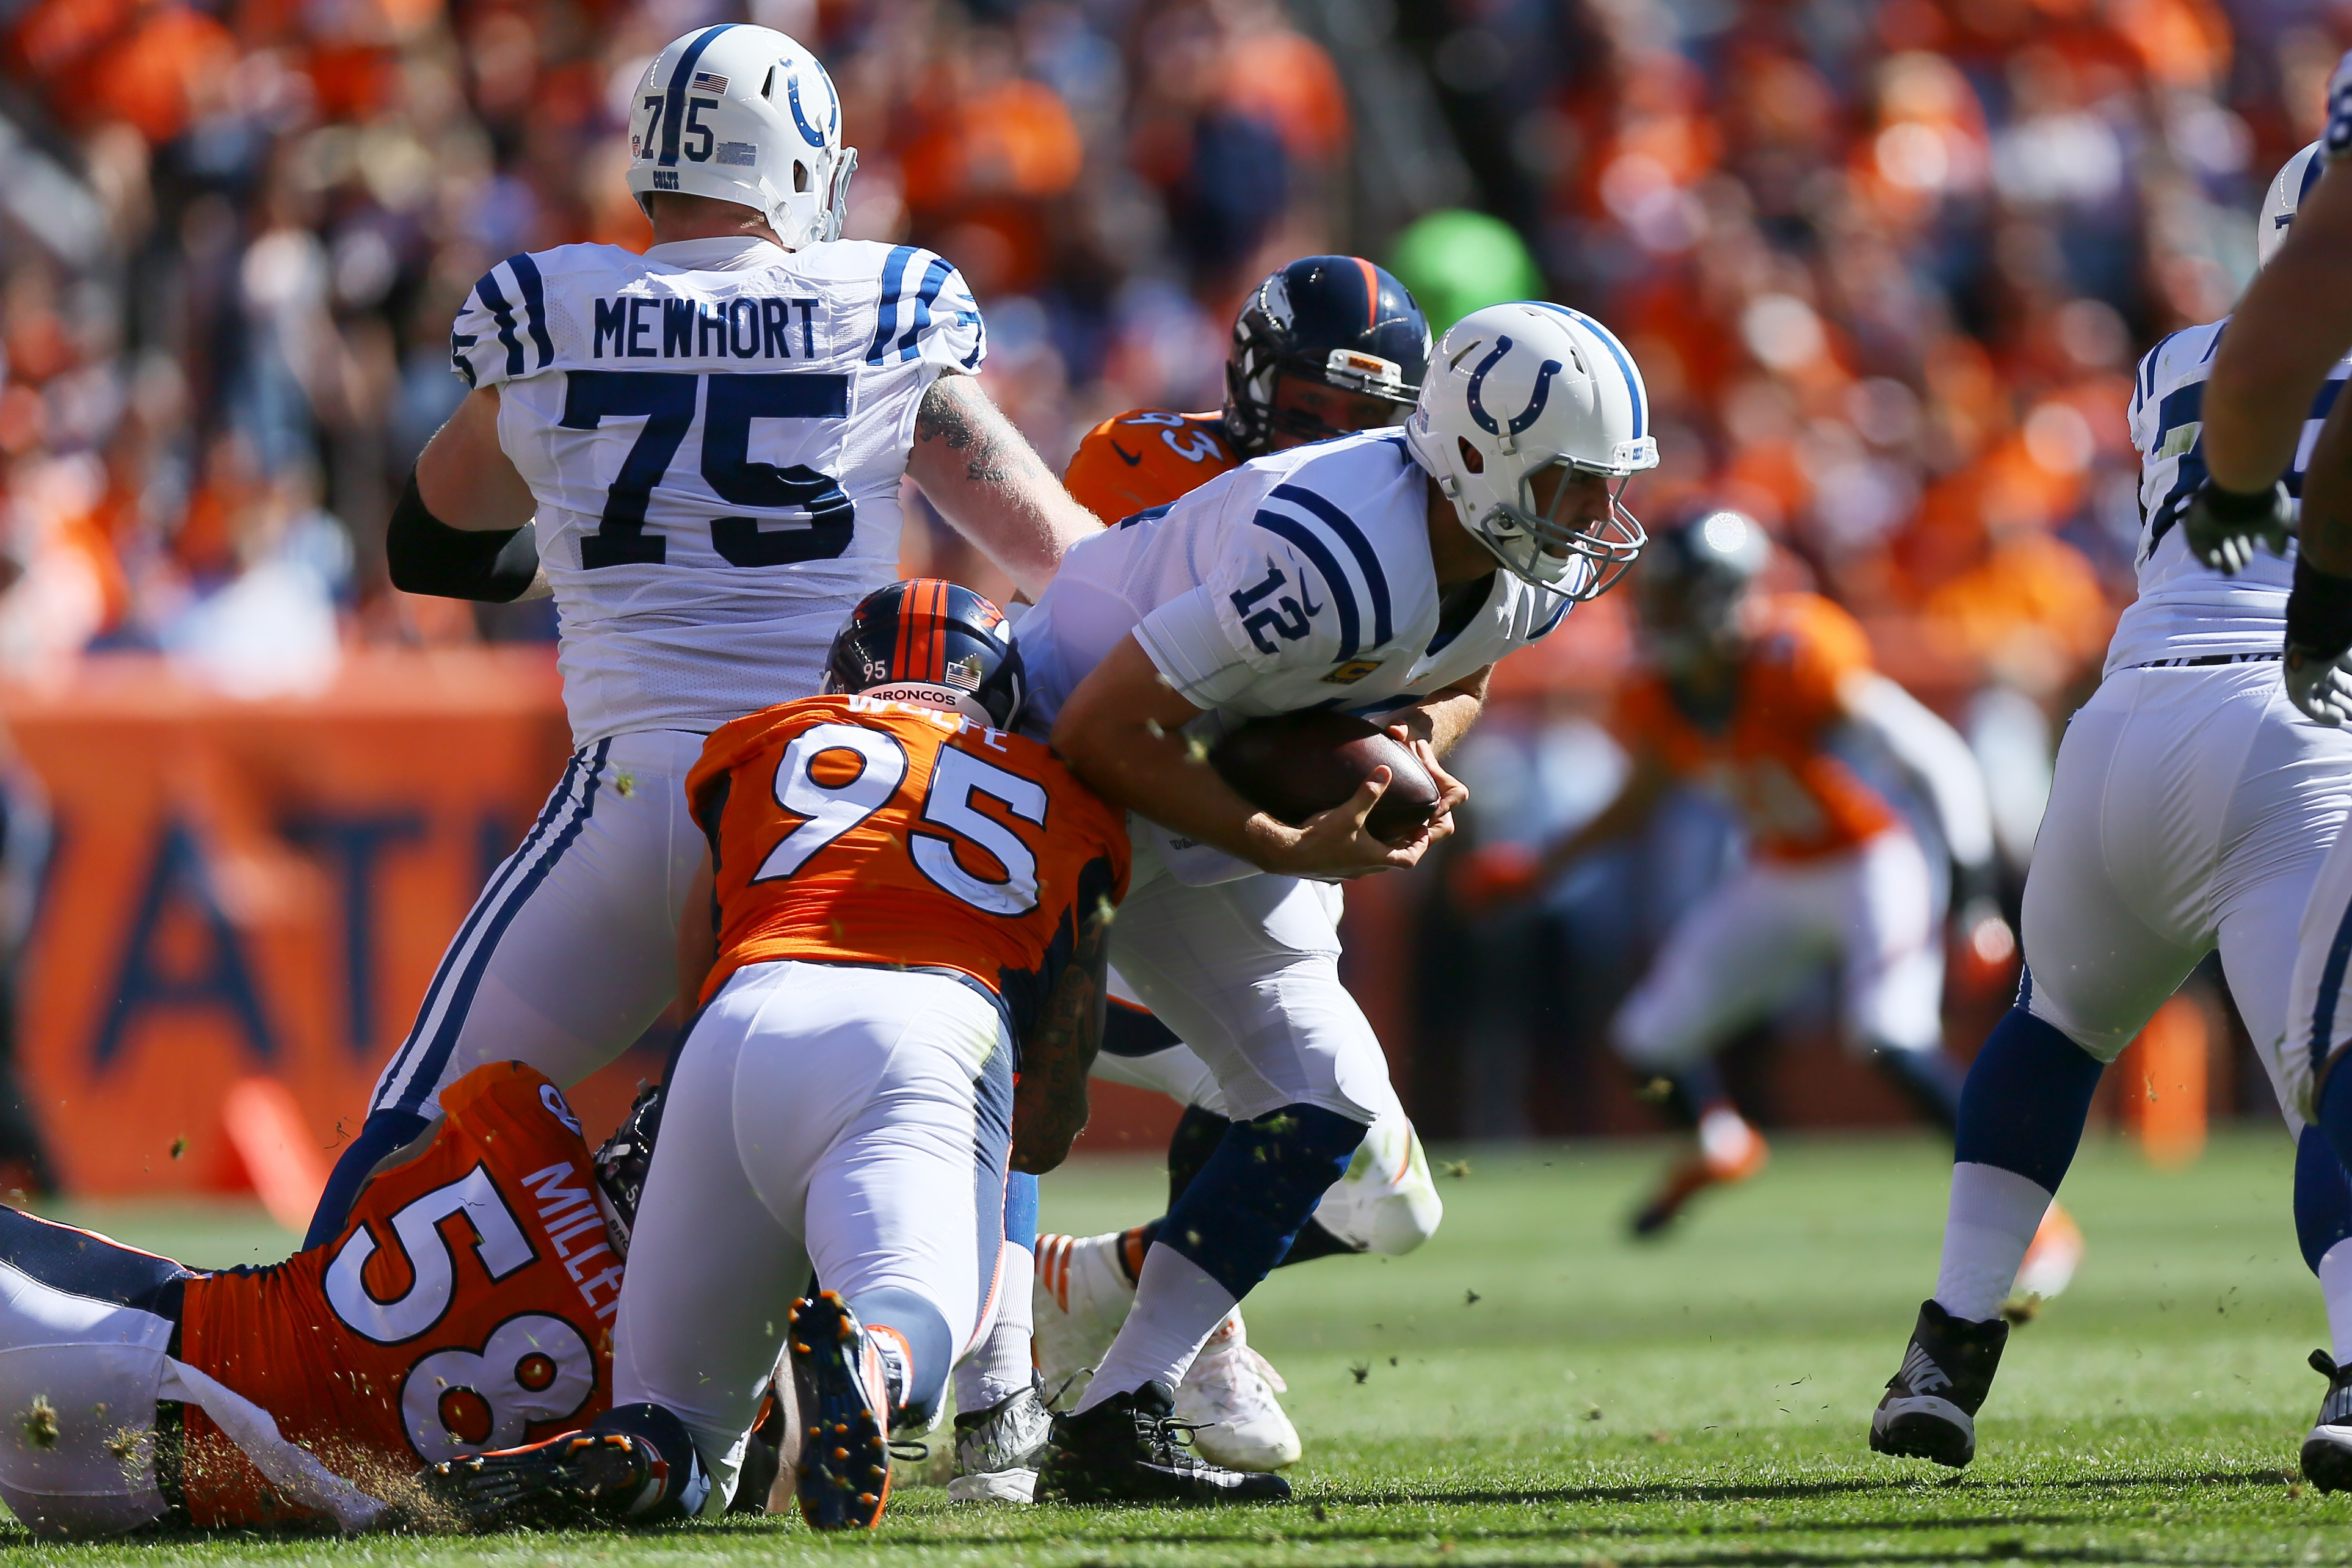 Outside linebacker Von Miller #58 and defensive end Derek Wolfe #95 of the Denver Broncos sack quarterback Andrew Luck of the Indianapolis Colts in the second quarter of the game at Sports Authority Field at Mile High on September 18, 2016. (Photo by Justin Edmonds/Getty Images)